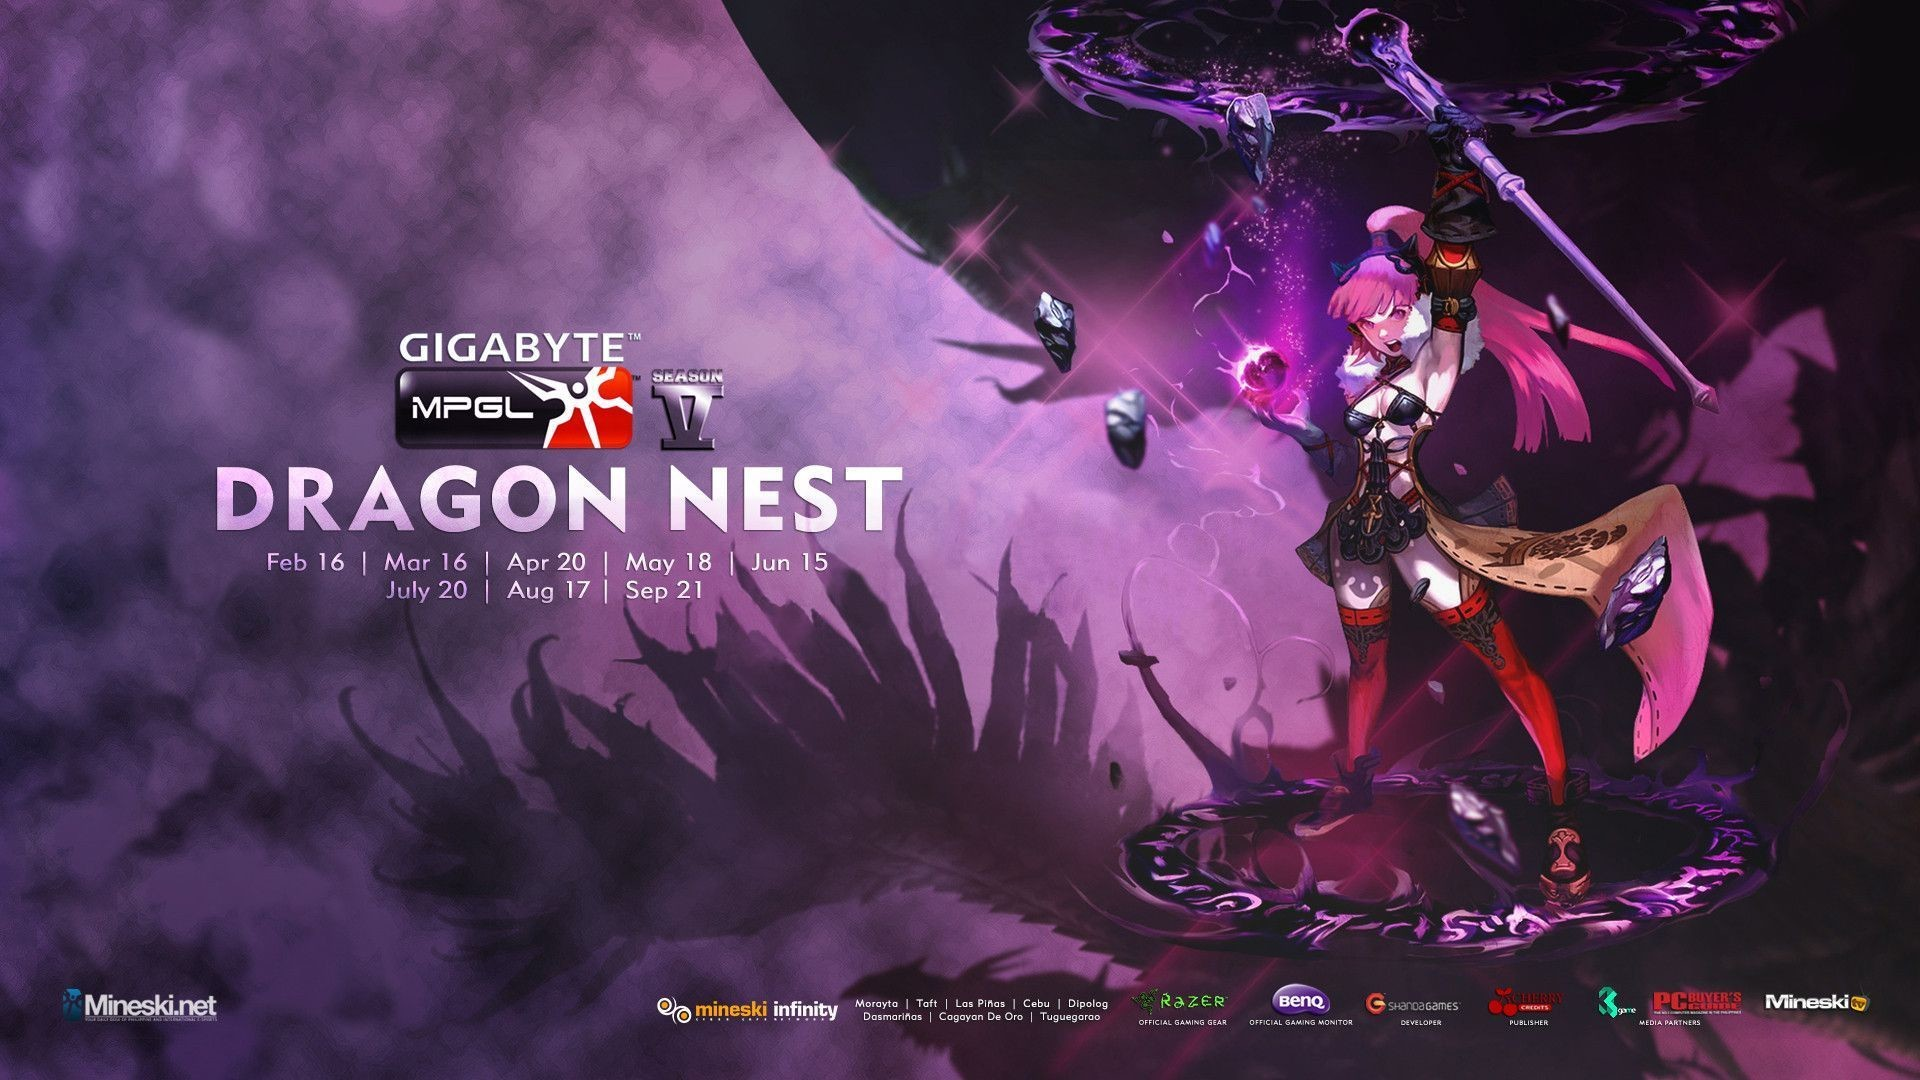 1920x1080 2 Dragon Nest HD Wallpapers | Backgrounds - Wallpaper Abyss